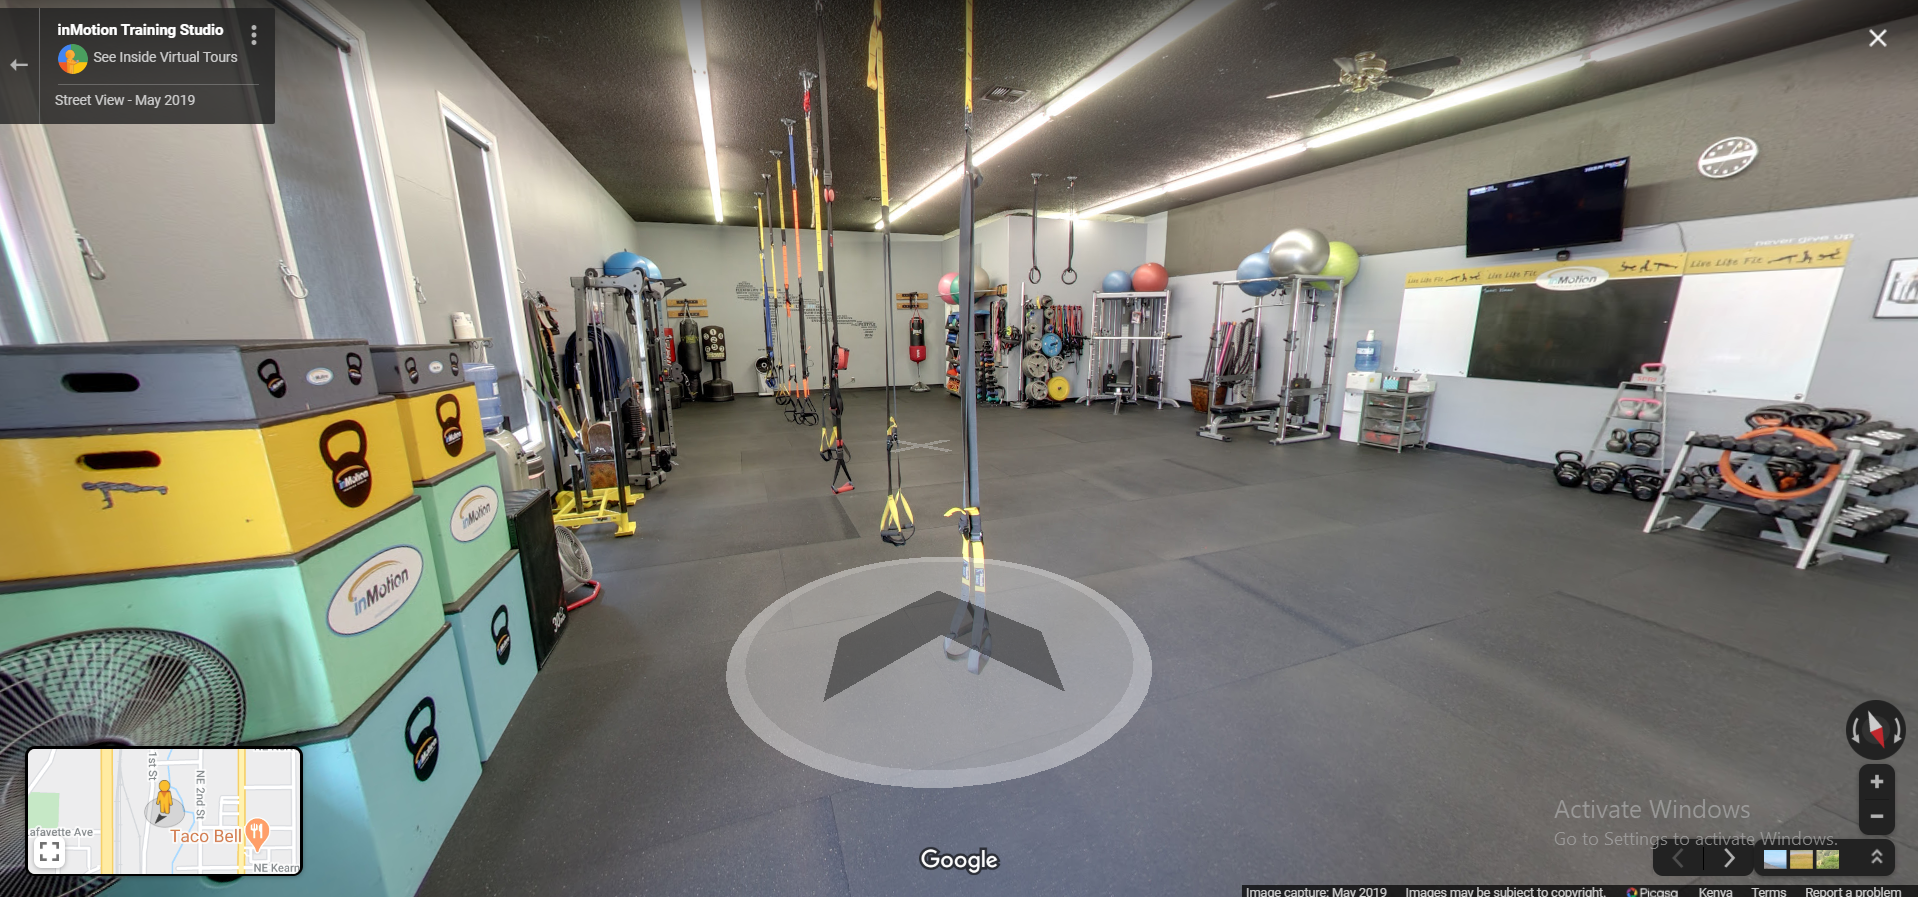 InMotion Training Studio - Bend